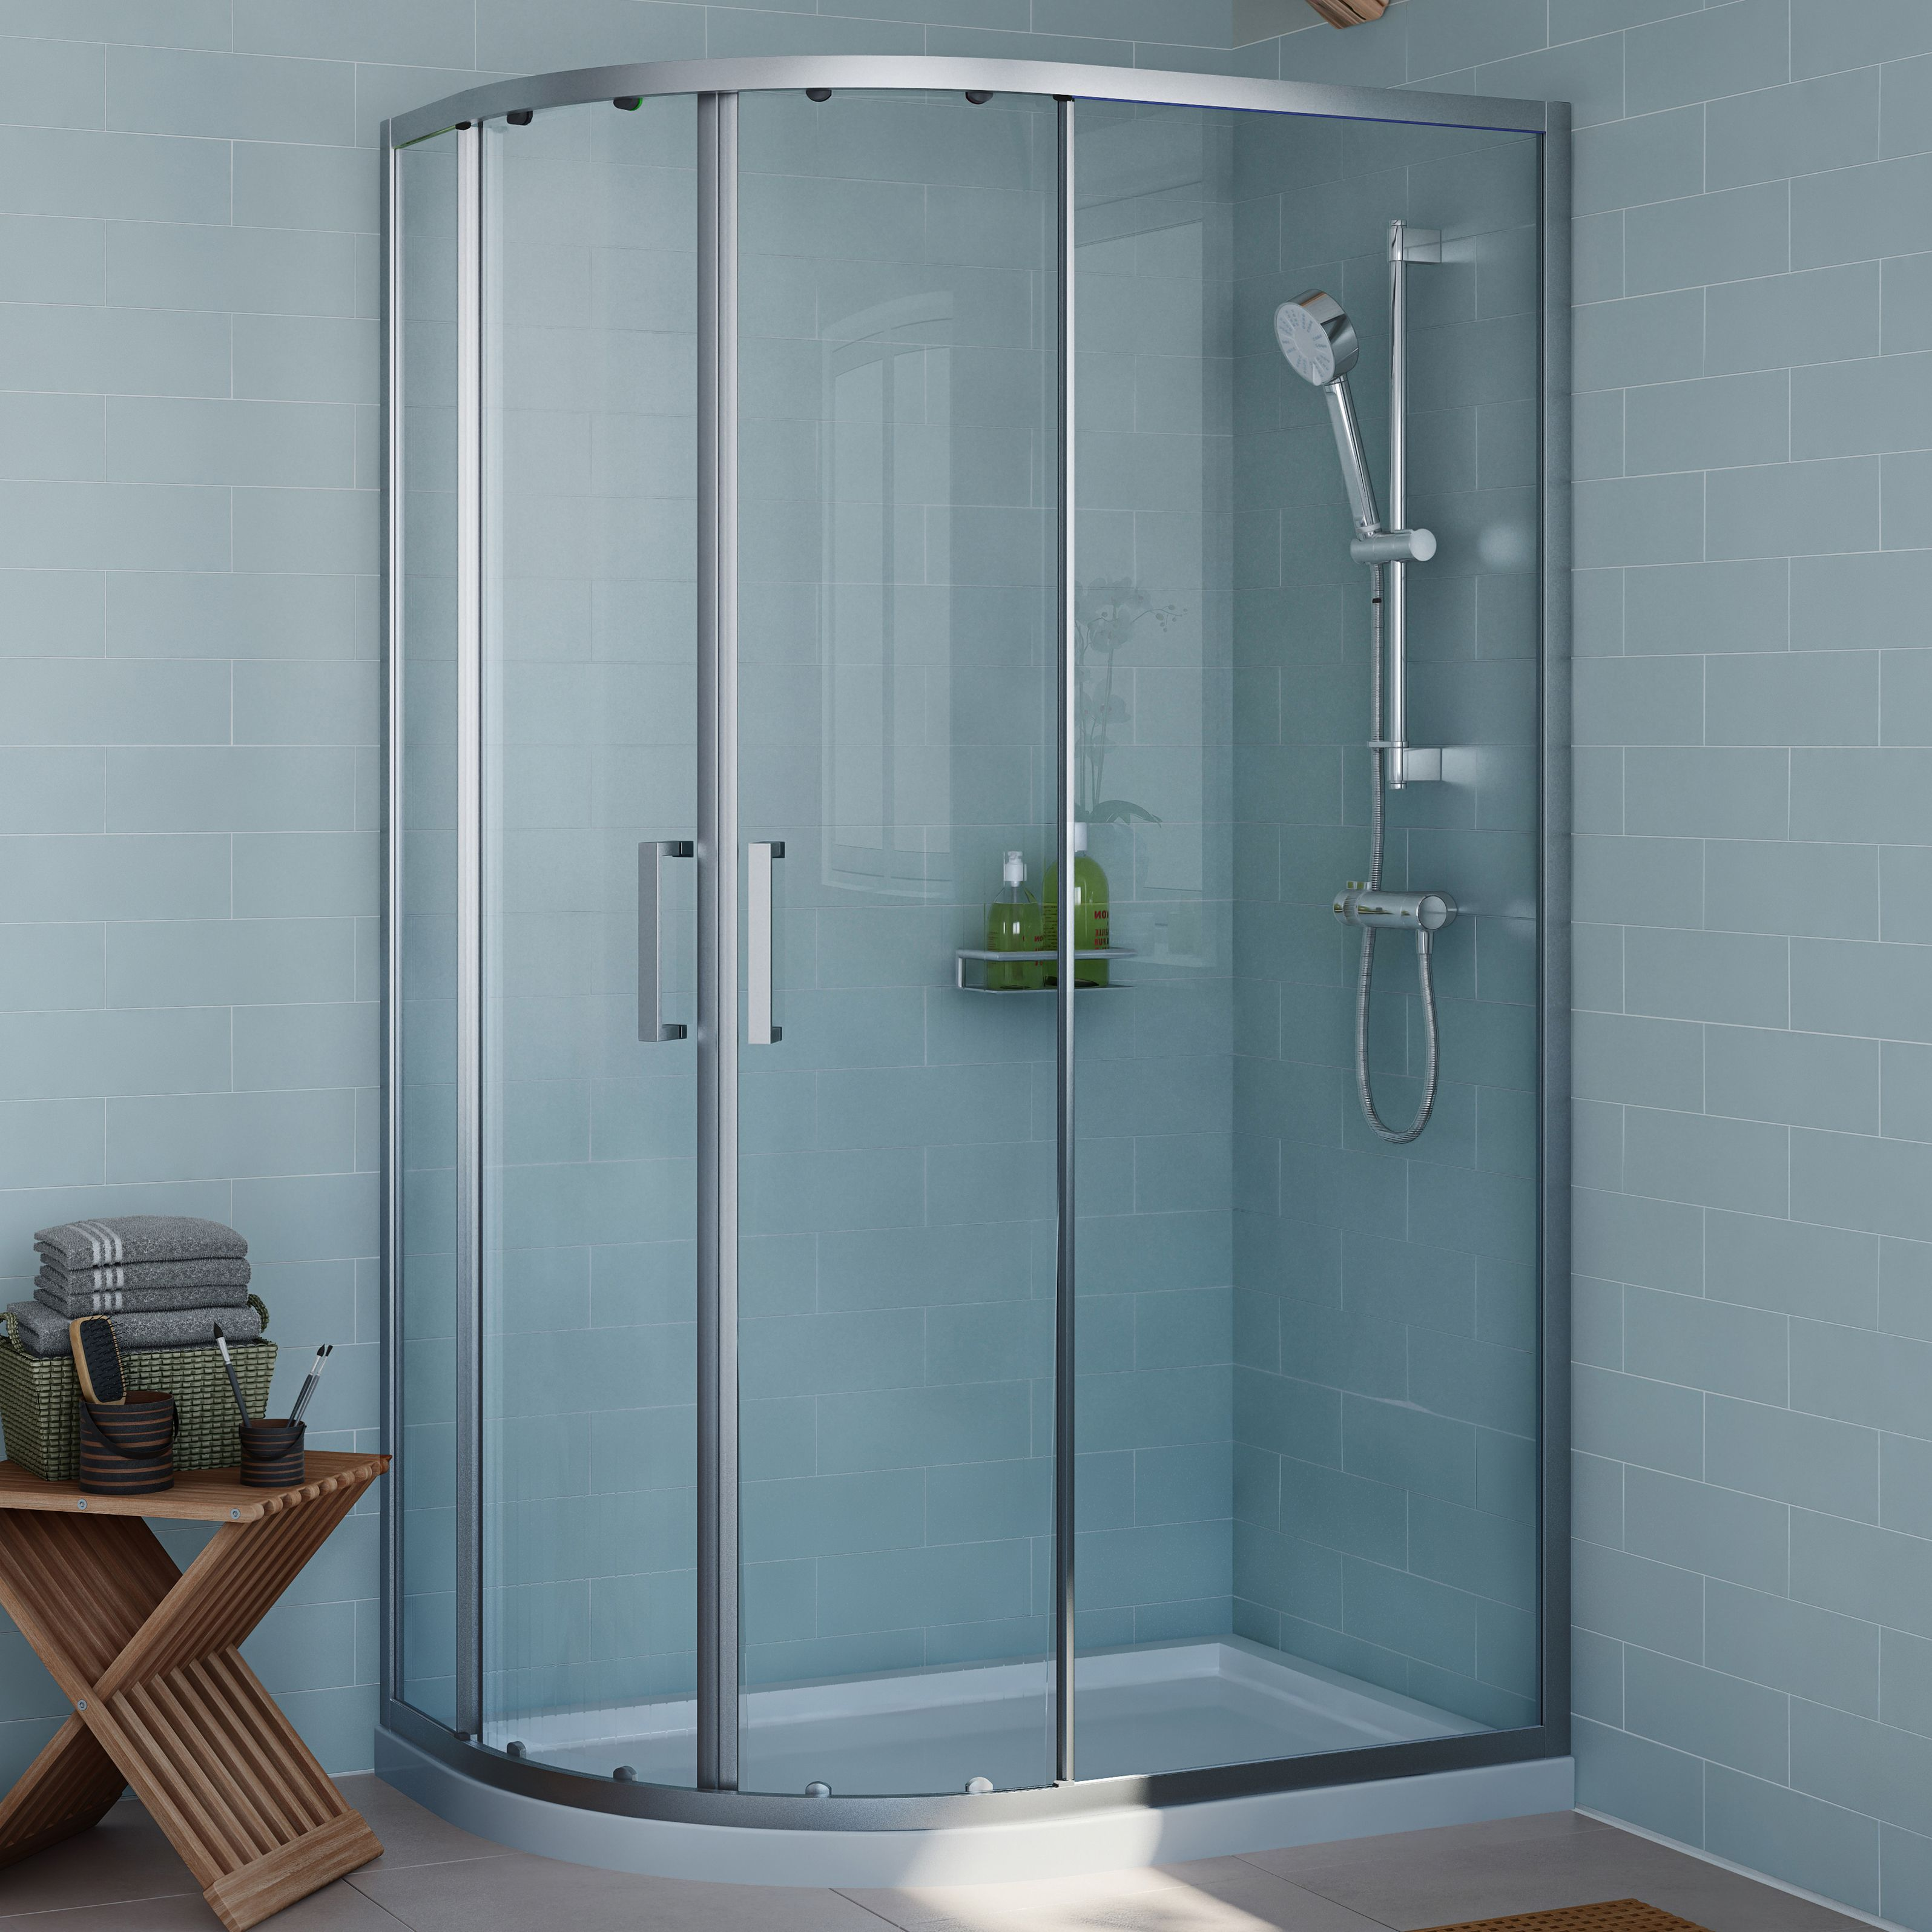 Cooke Lewis Exuberance Offset Quadrant Rh Shower Enclosure Tray Waste Pack With Double Sliding Quadrant Shower Enclosures Shower Enclosure Quadrant Shower